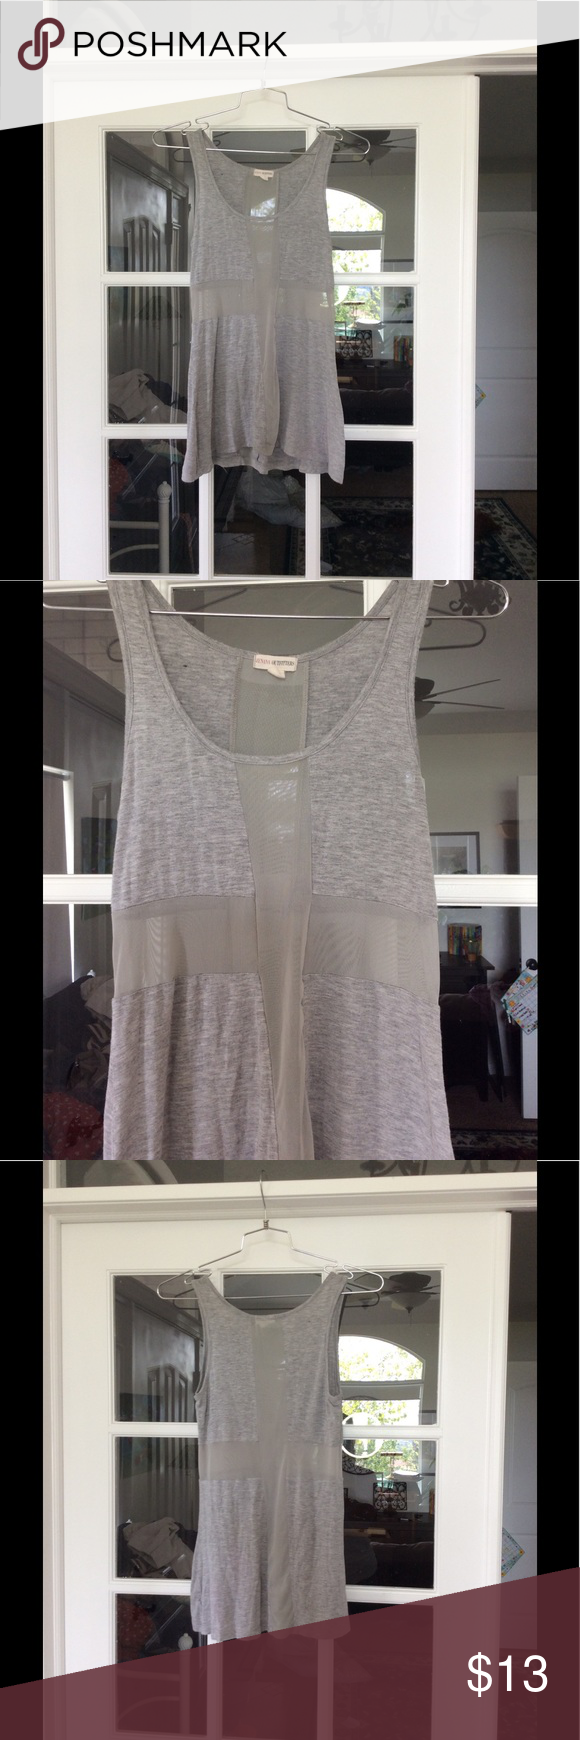 "Edgy, Cool Tank from Zenana Outfitters This is a killer tank from Zenana Outfitters. Gray rayon and spandex with a mesh ""cross"" in front and back. Size S but could easily fit a medium. Zenana Outfitters Tops Tank Tops"